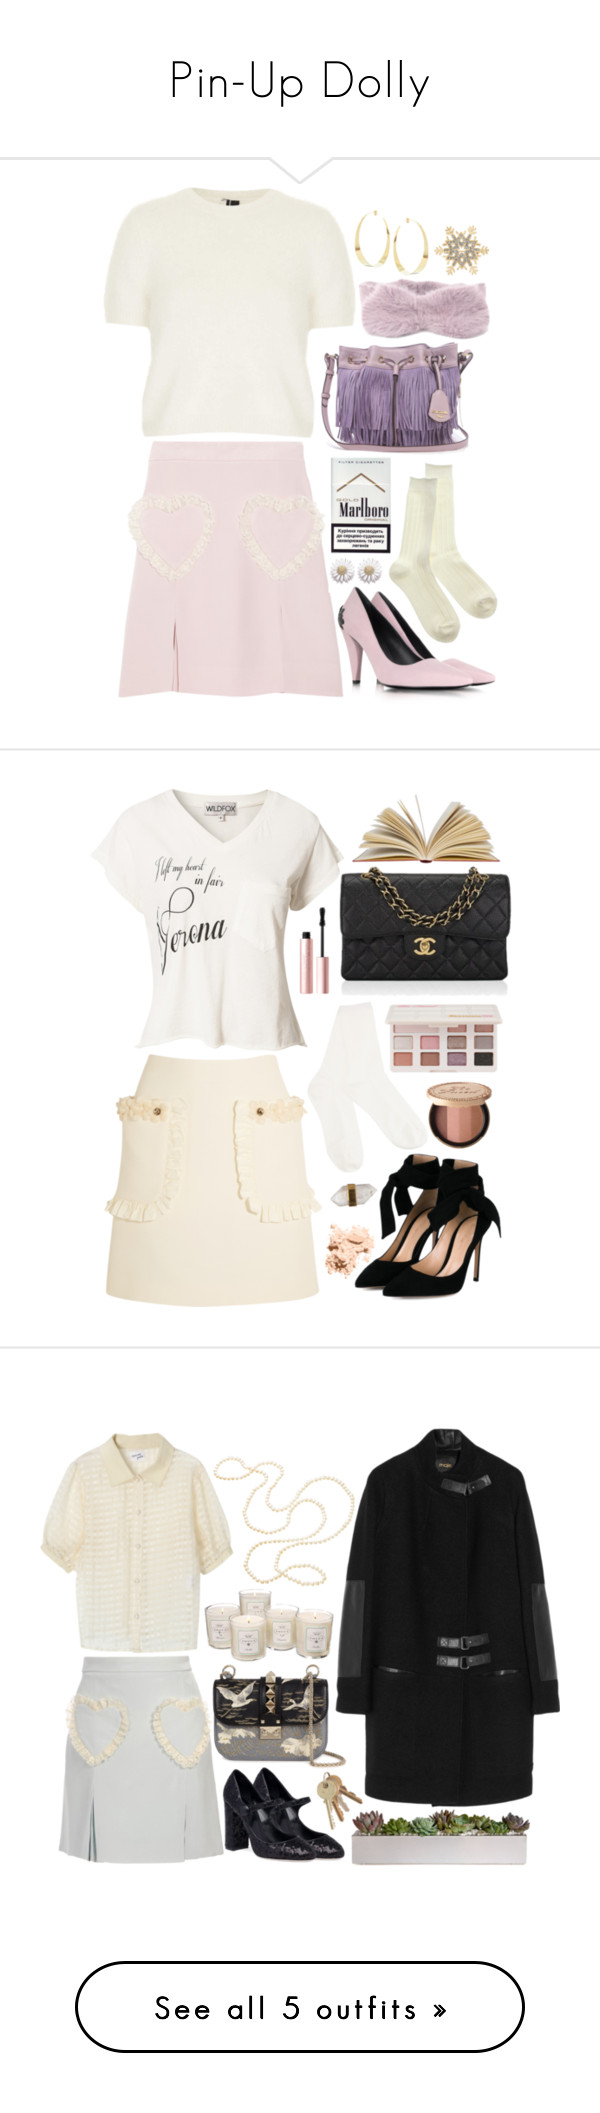 """""""Pin-Up Dolly"""" by natjulieta on Polyvore featuring moda, Meadham Kirchhoff, Topshop, Daisy Jewellery, McQ by Alexander McQueen, Lana, Charter Club, ootd, Larme y Coordinates"""